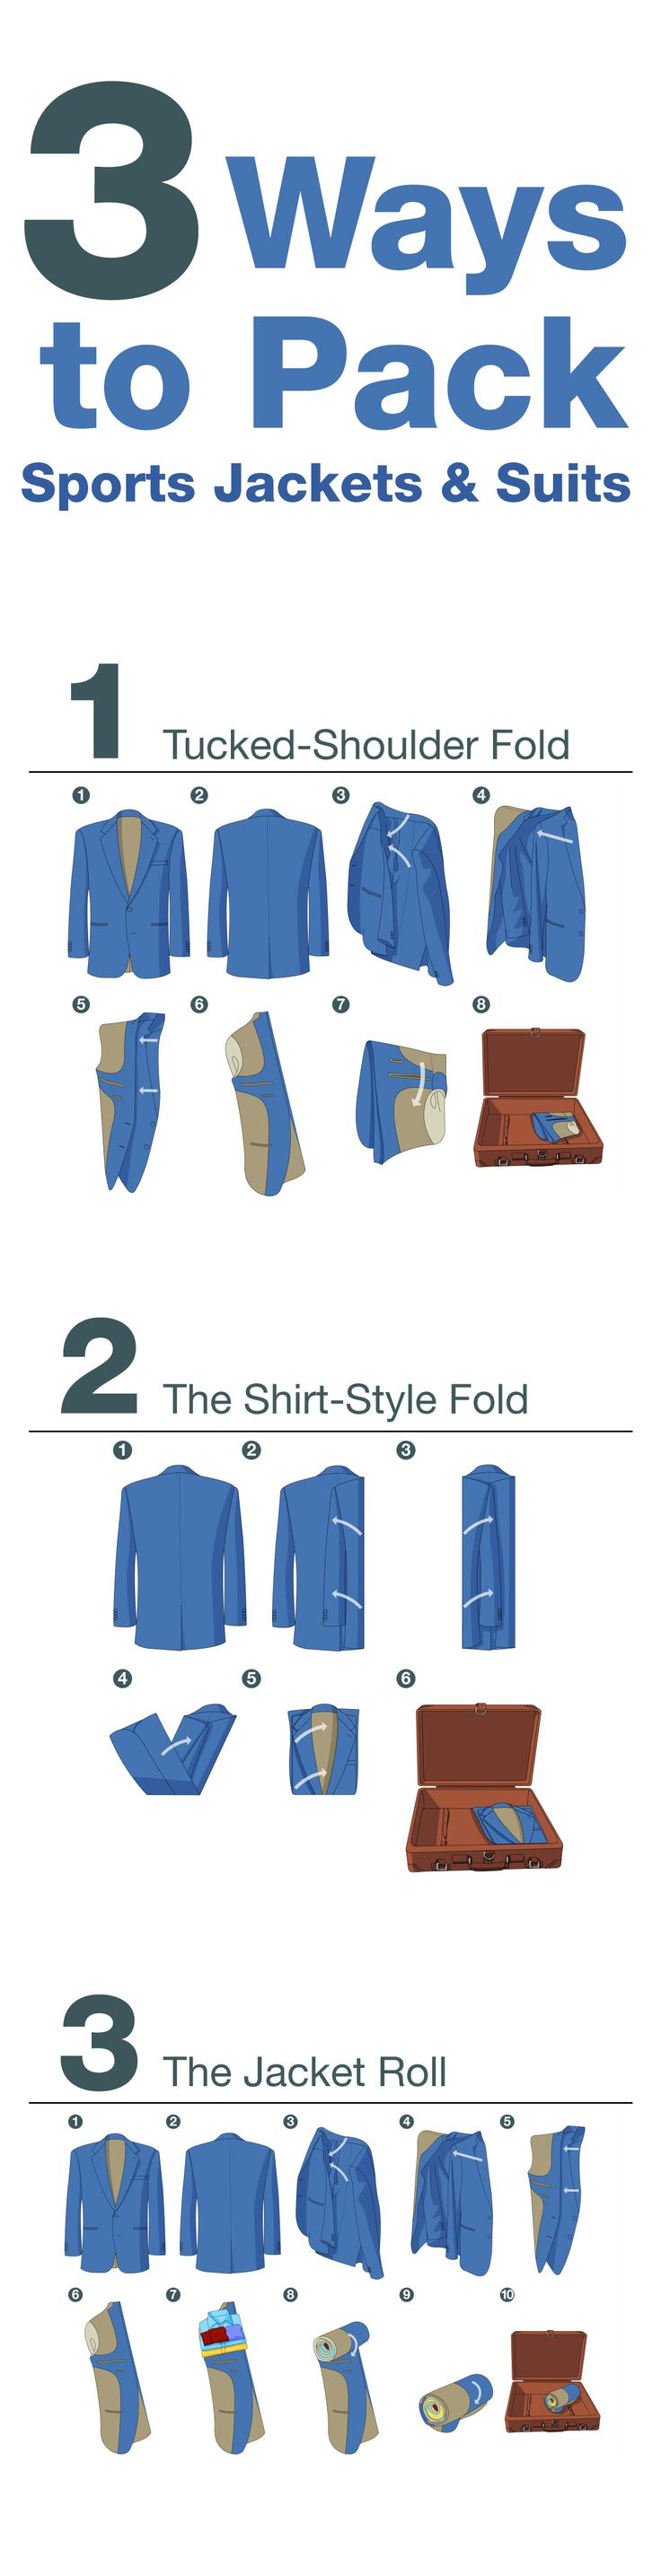 3 Ways to Pack Sports Jackets & Suits, #infographic